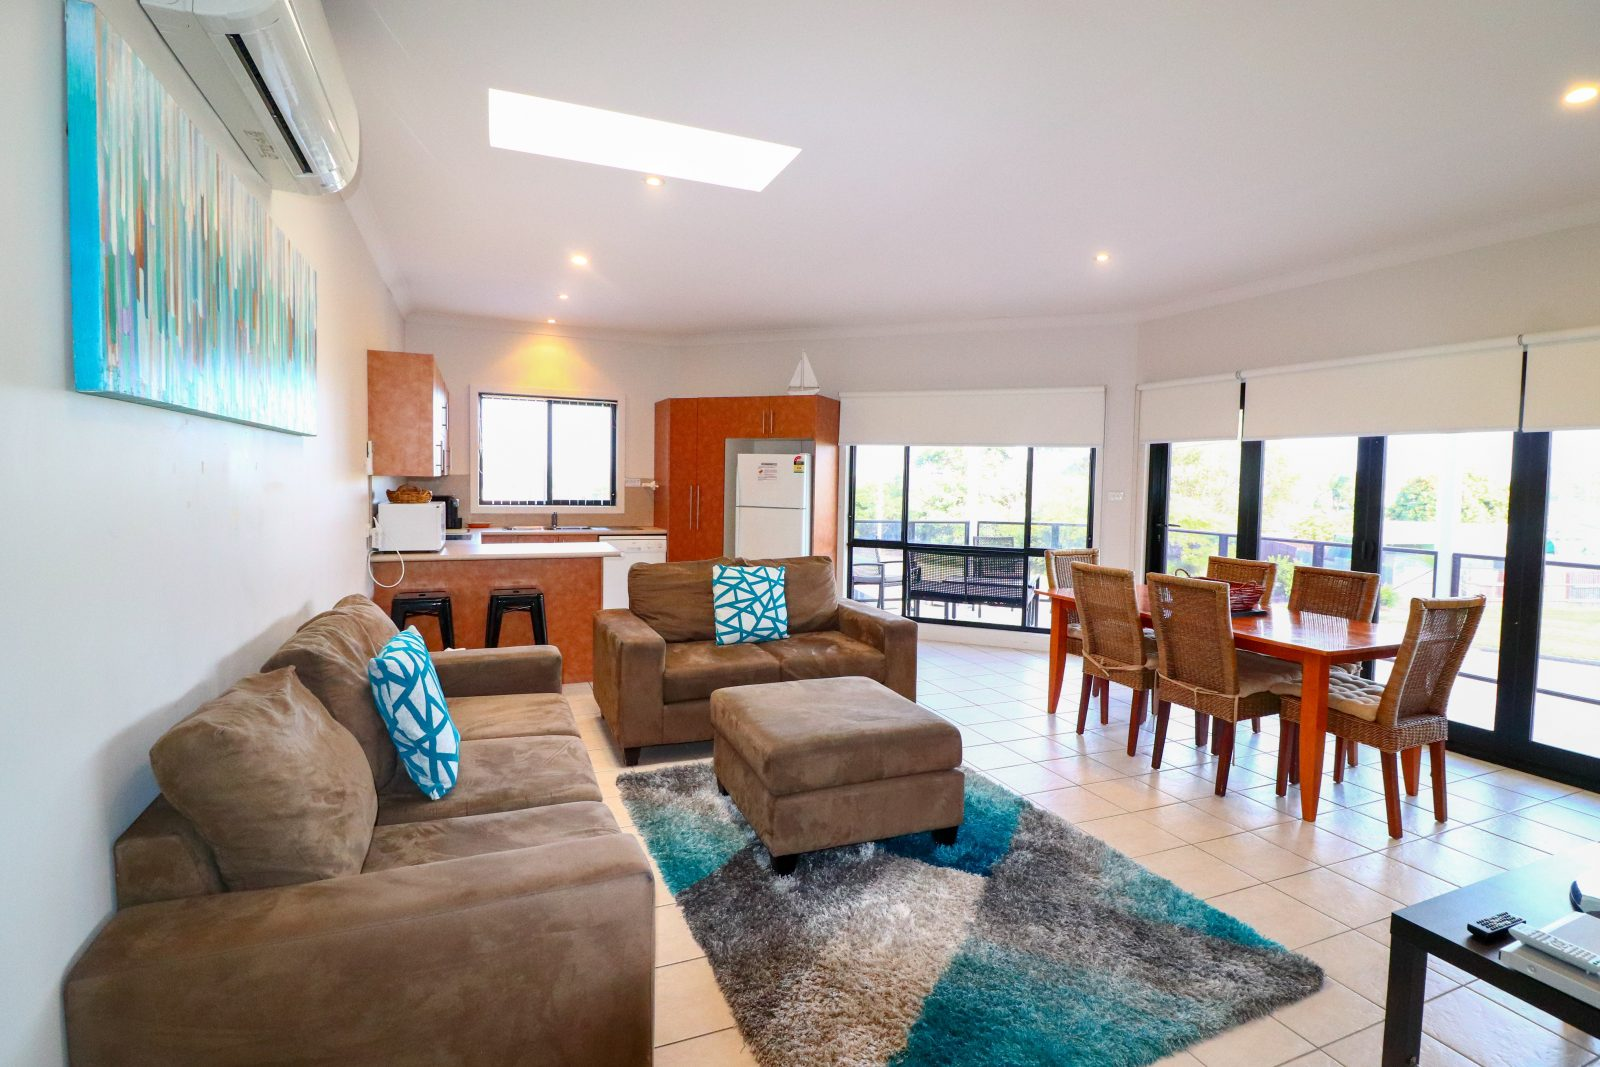 The open plan living area is located upstairs